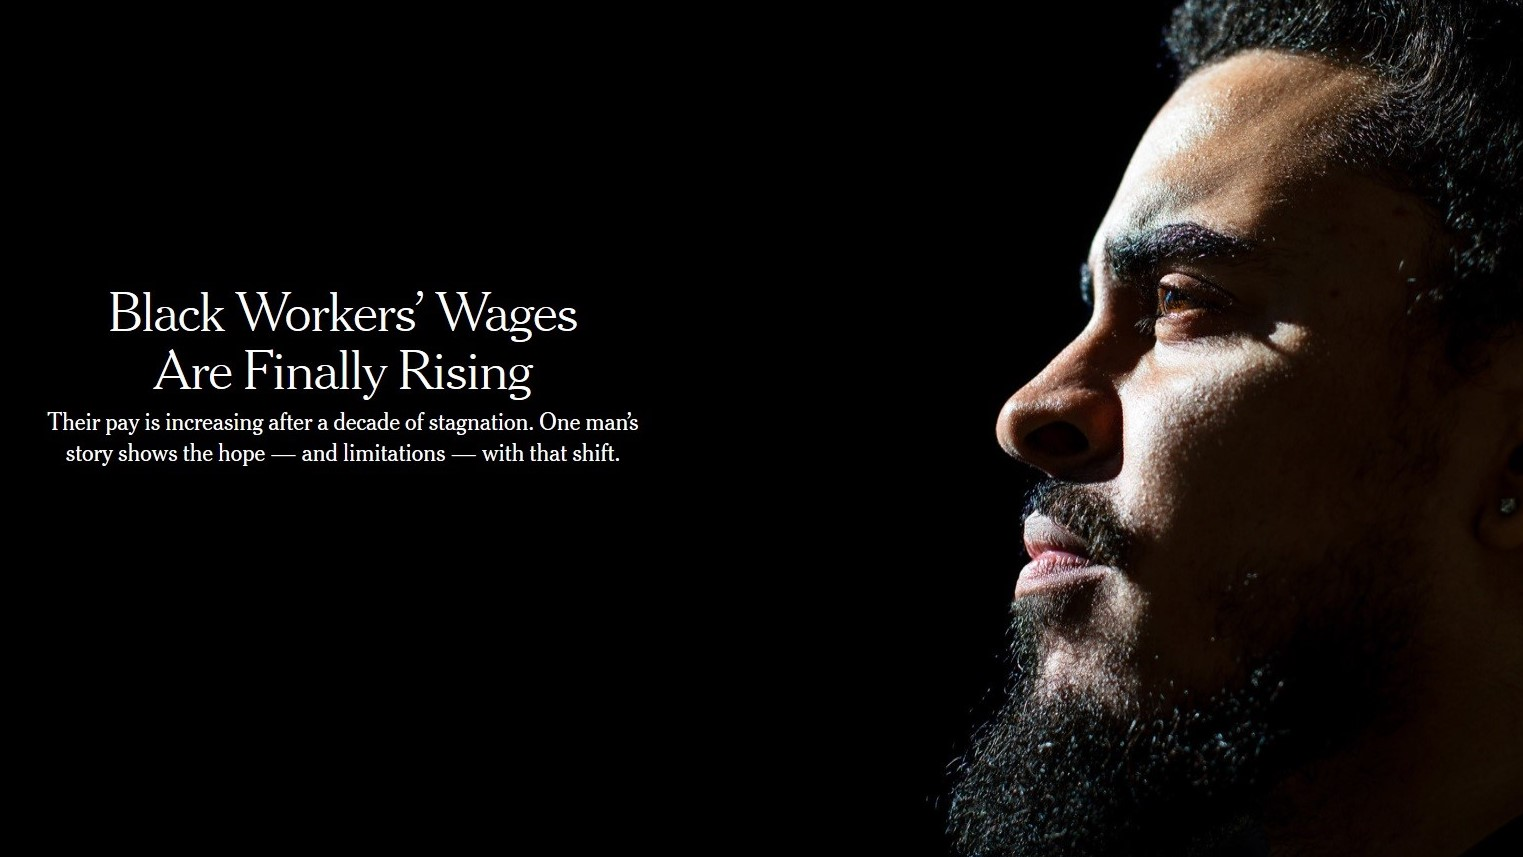 New York Times Reports 'Black Workers' Wages Are Finally Rising' -- Headline Altered for Paper